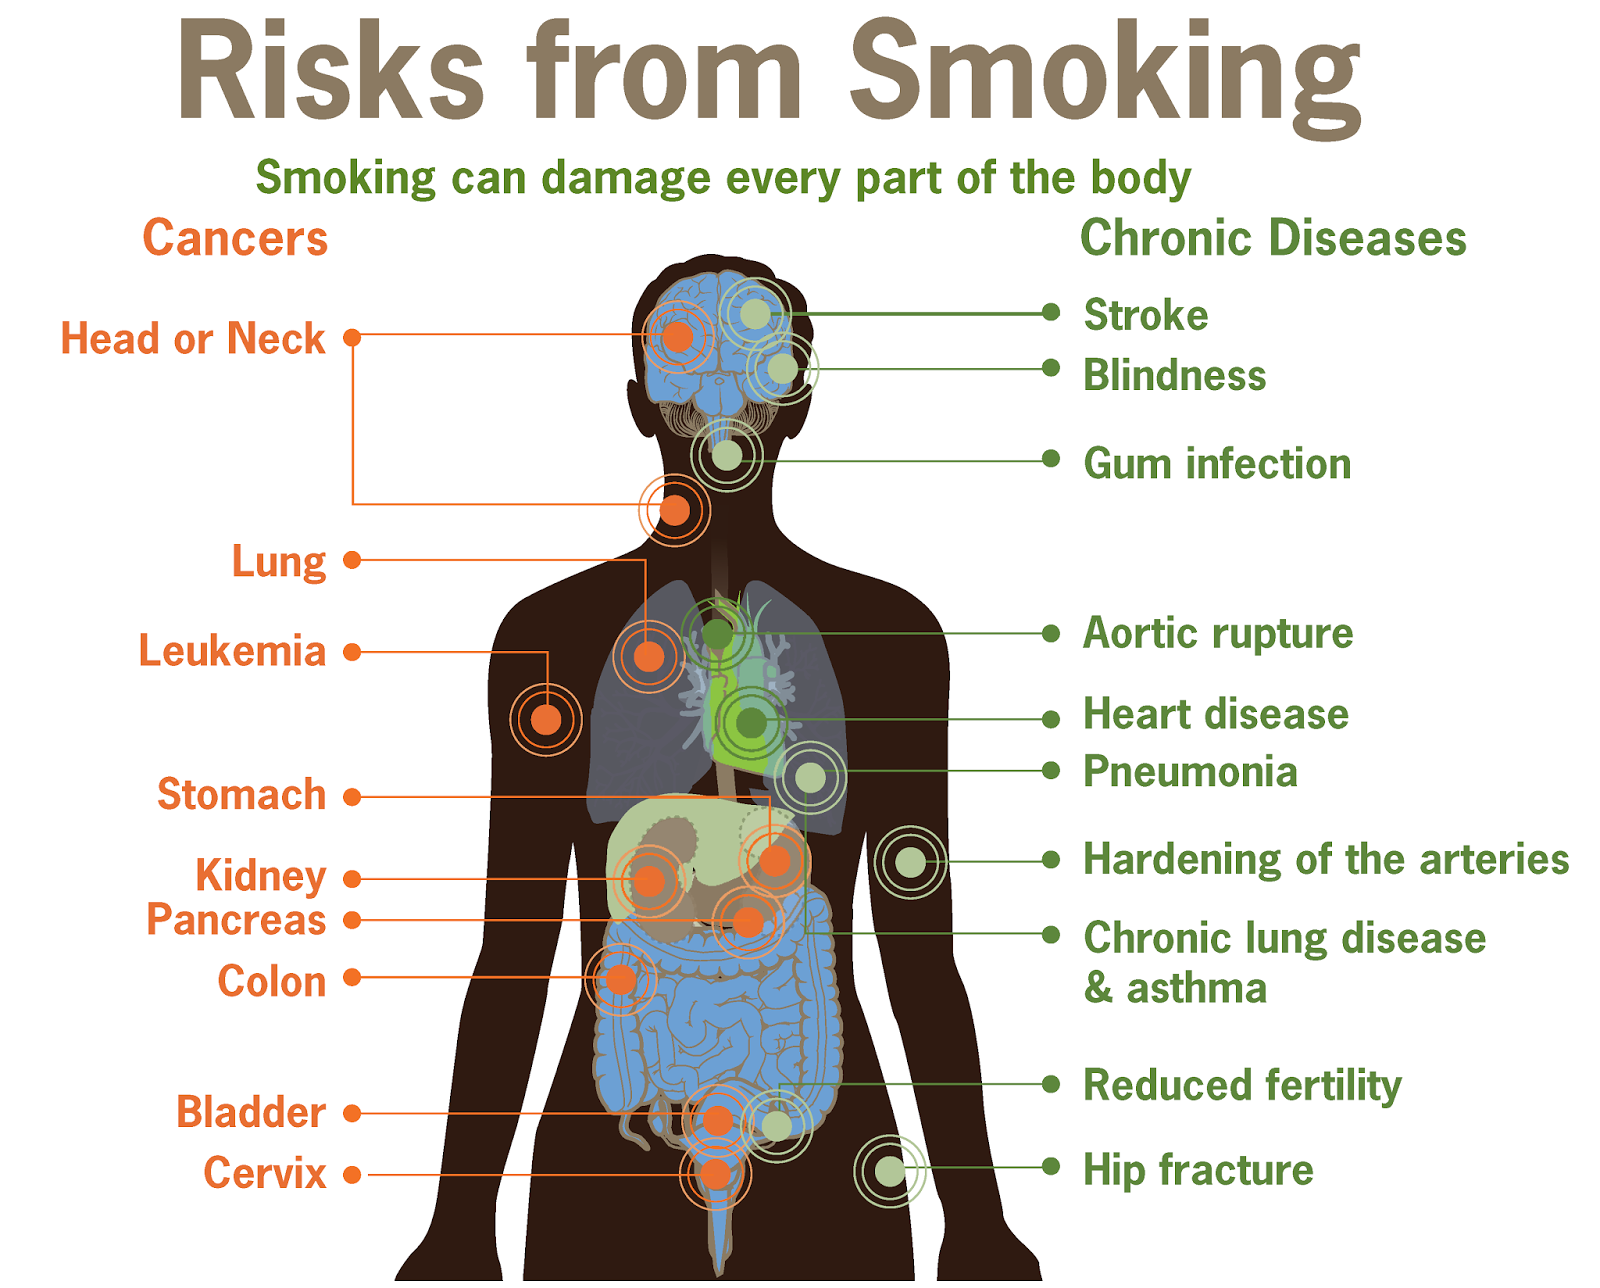 cause and effect essays on smoking essay world war what caused  should cigarette smoking be banned essay typer why not buy should cigarette smoking be banned essay